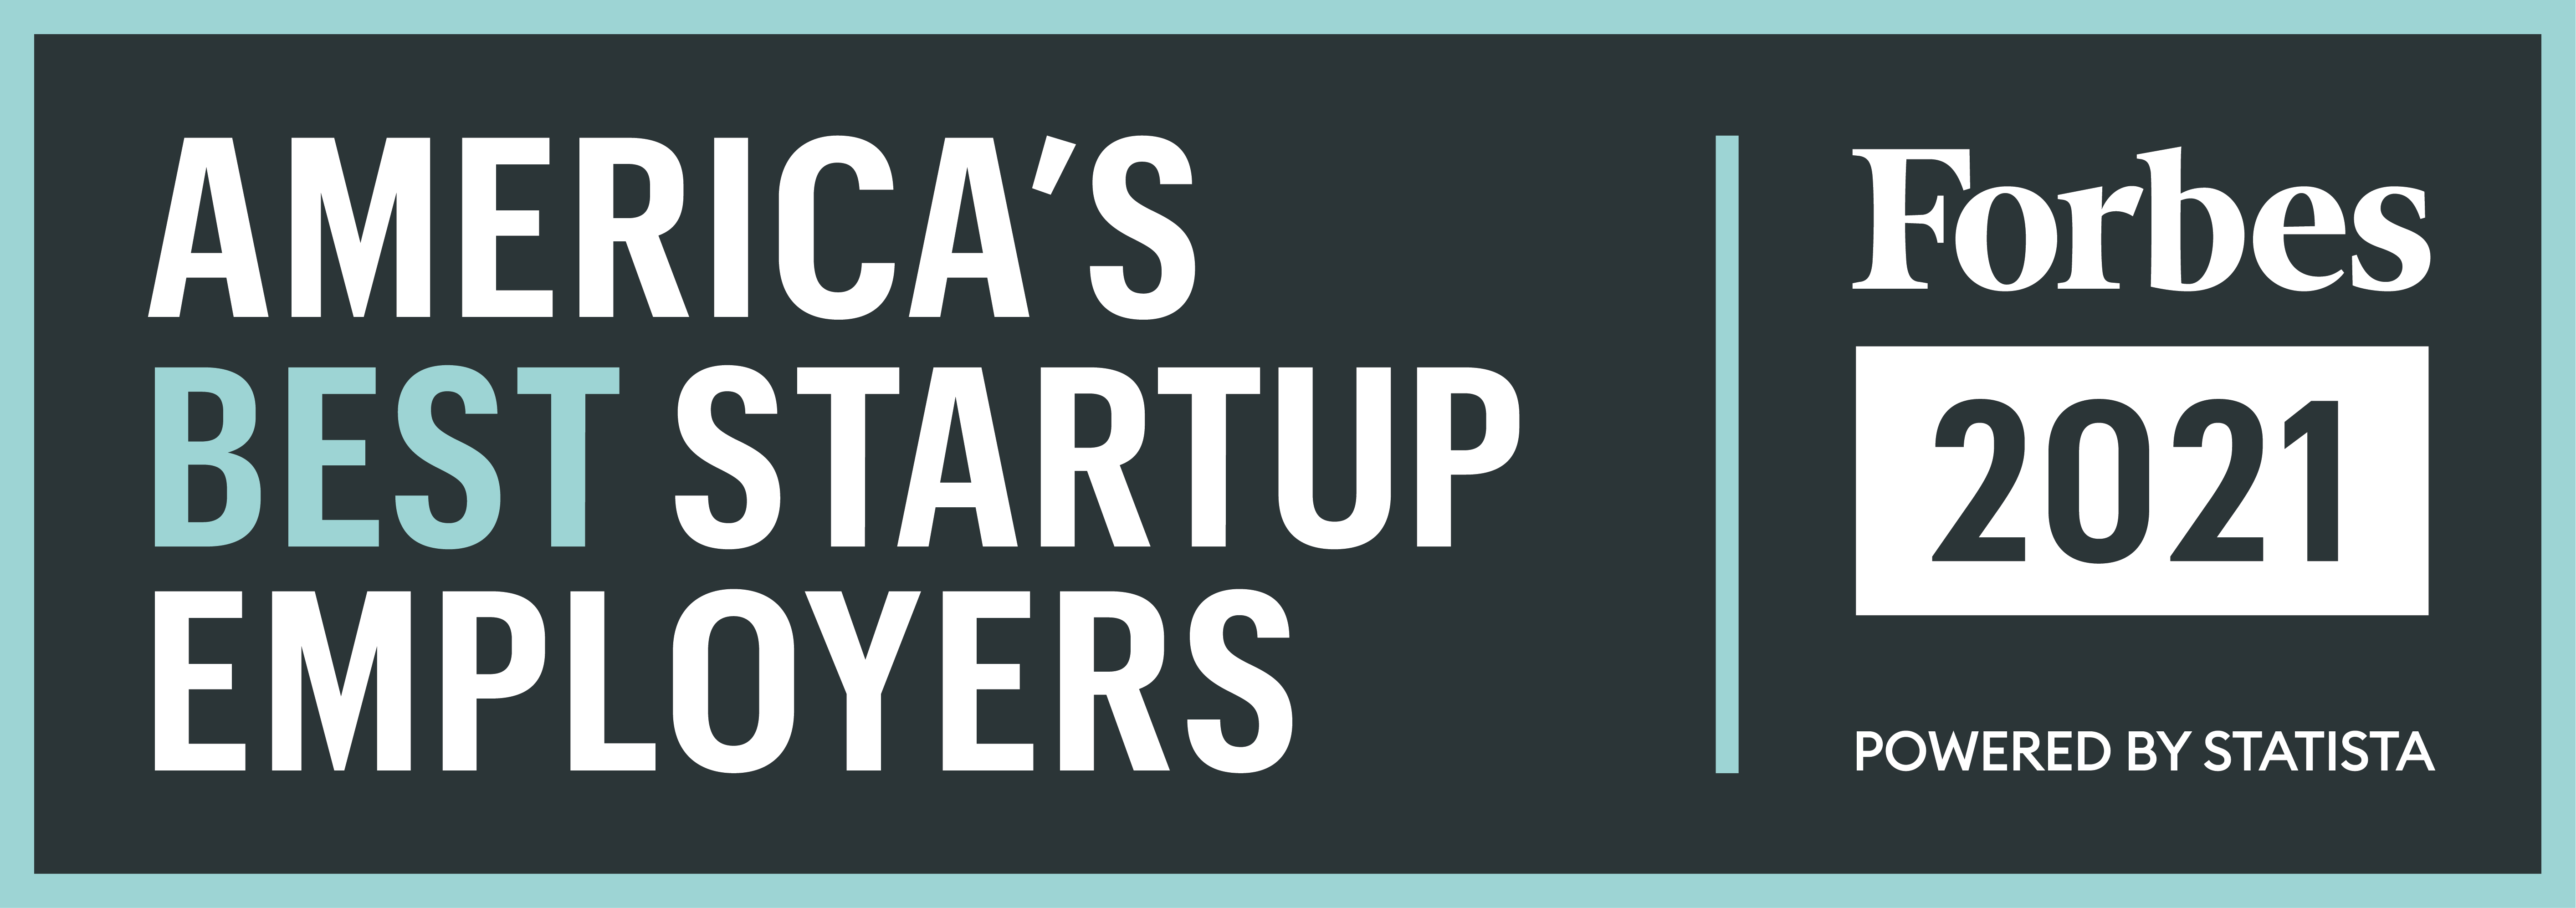 Forbes best startup